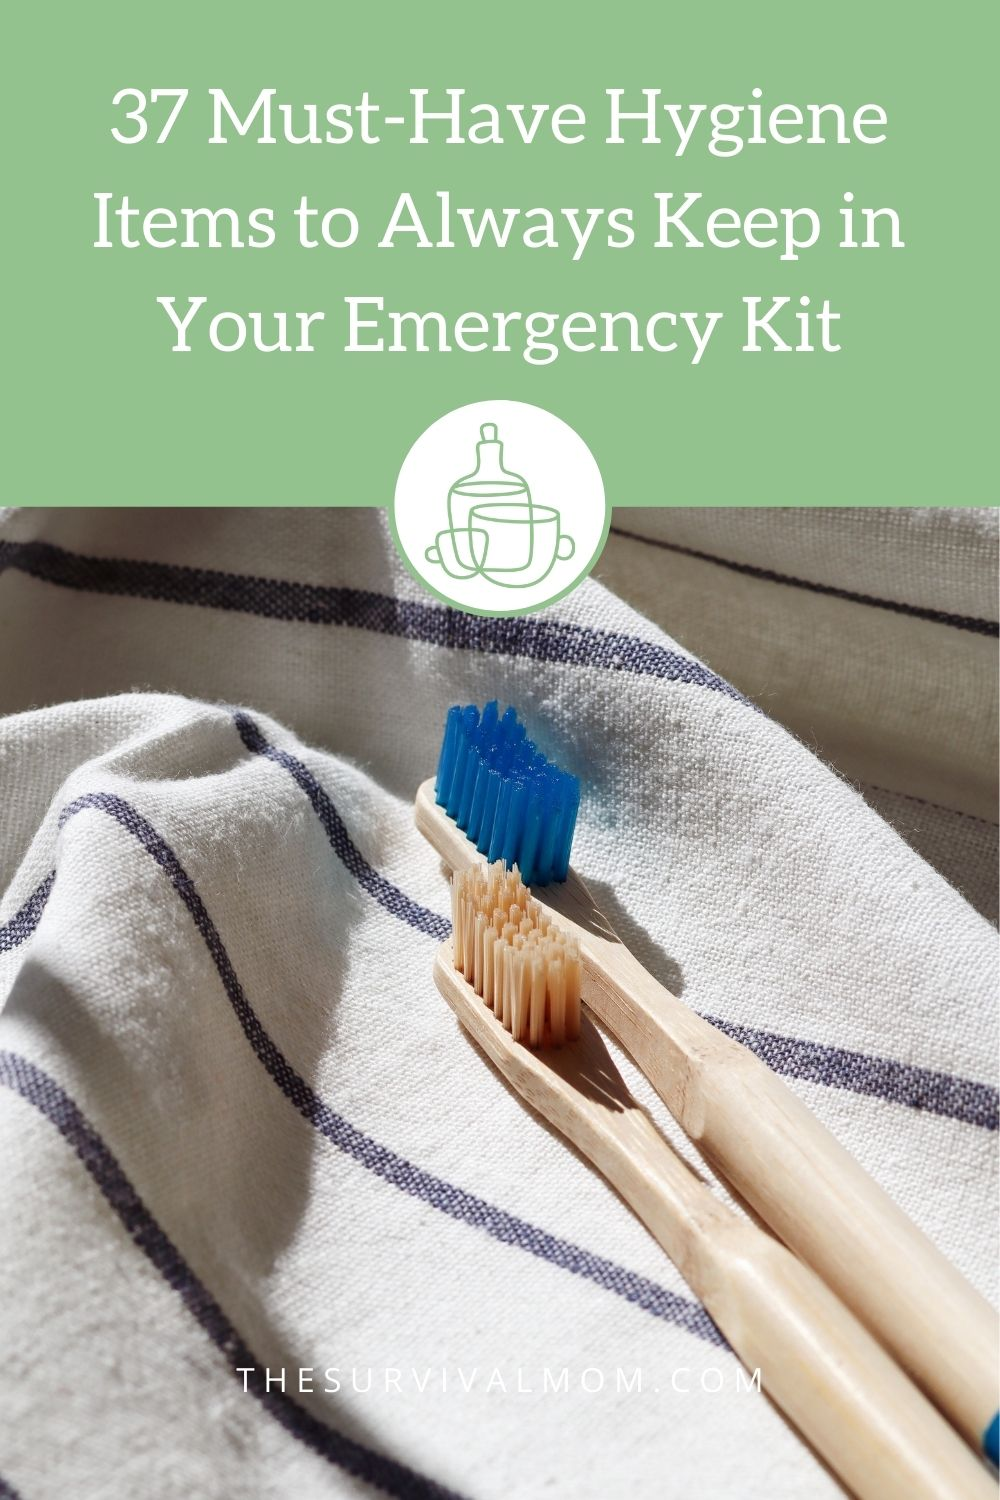 37 Must Have Hygiene Items to Always Keep in Your Emergency Kit via The Survival Mom